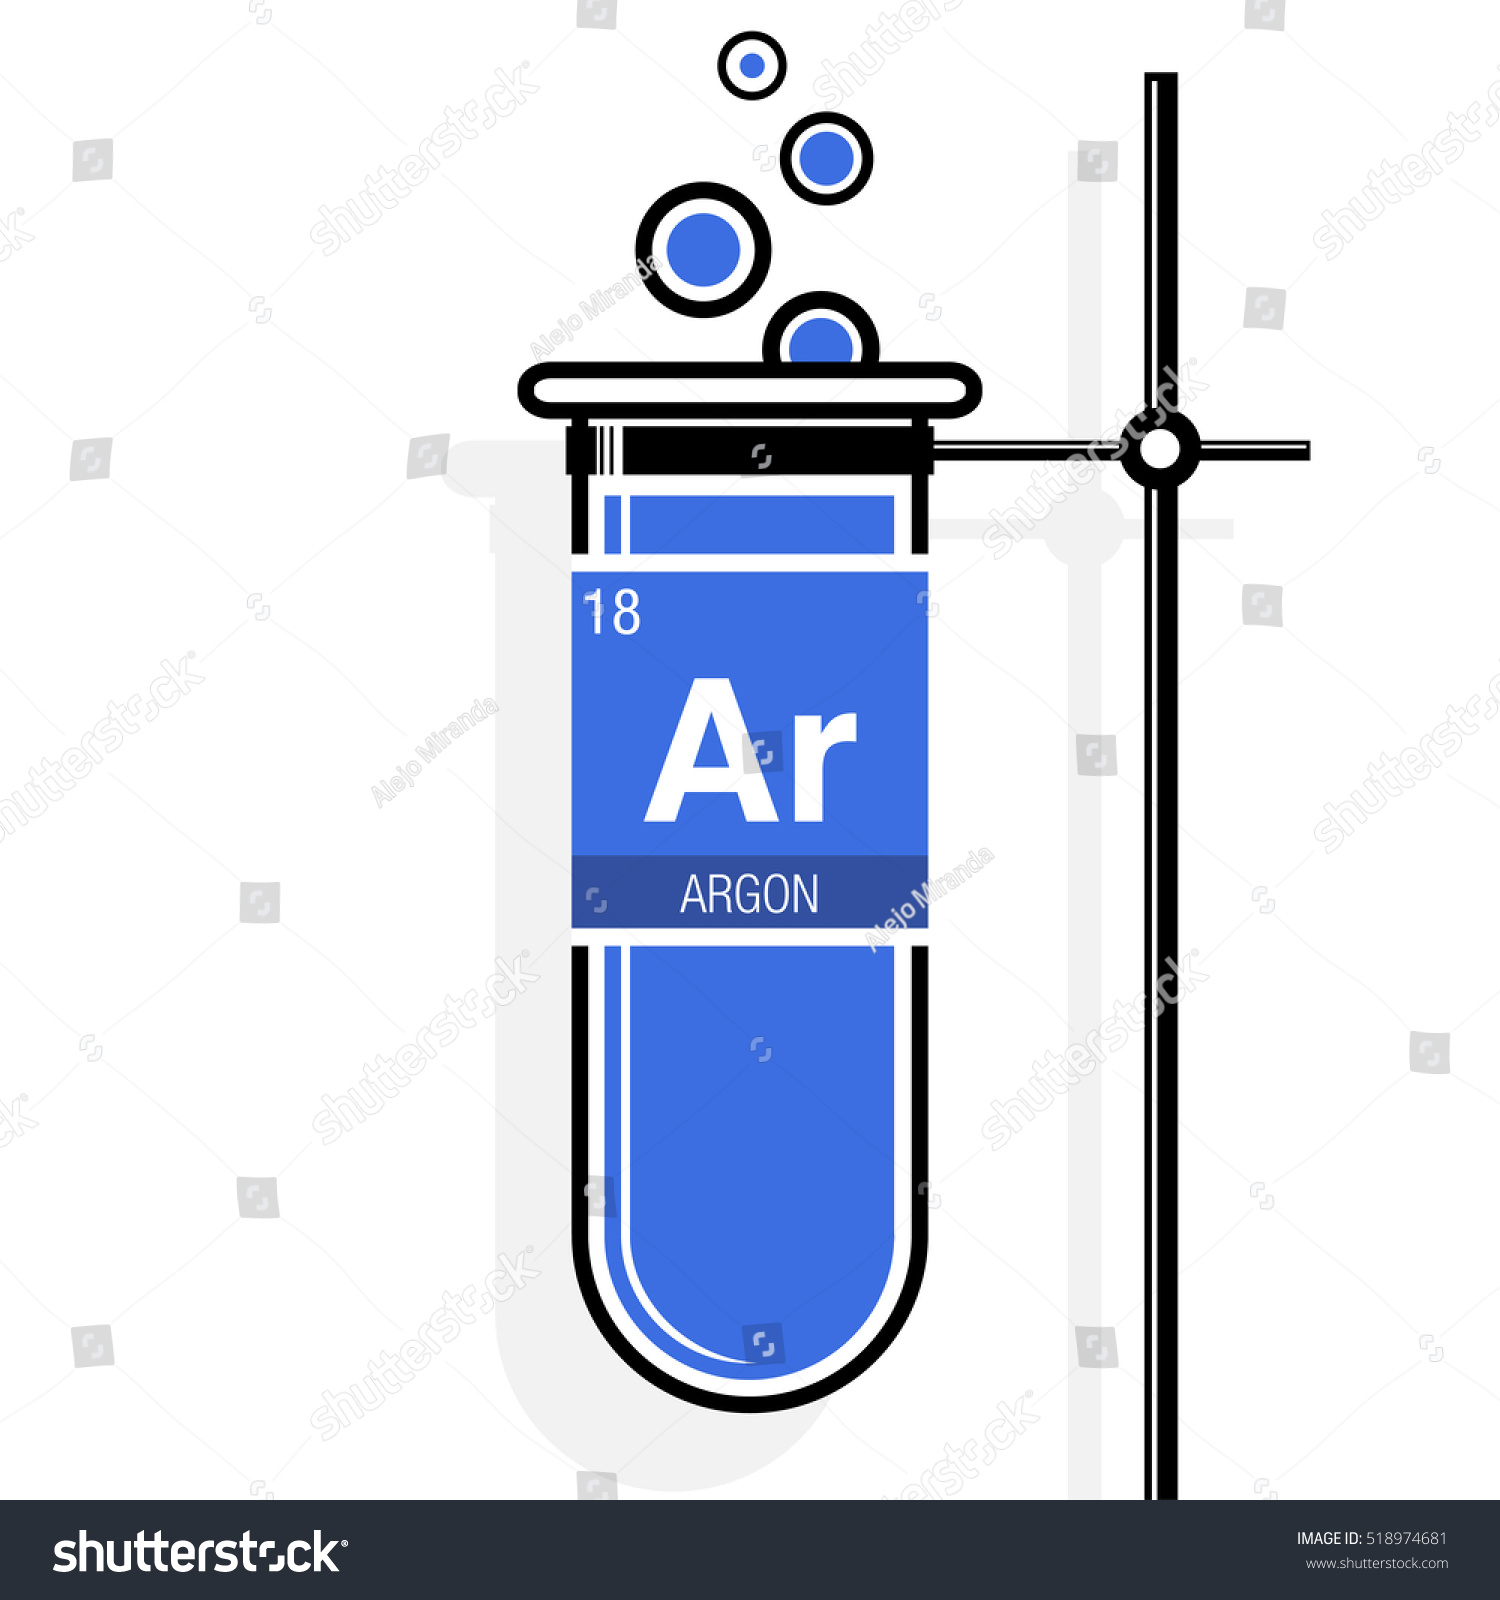 Argon symbol on label blue test stock vector 518974681 shutterstock argon symbol on label in a blue test tube with holder element number 18 of urtaz Choice Image